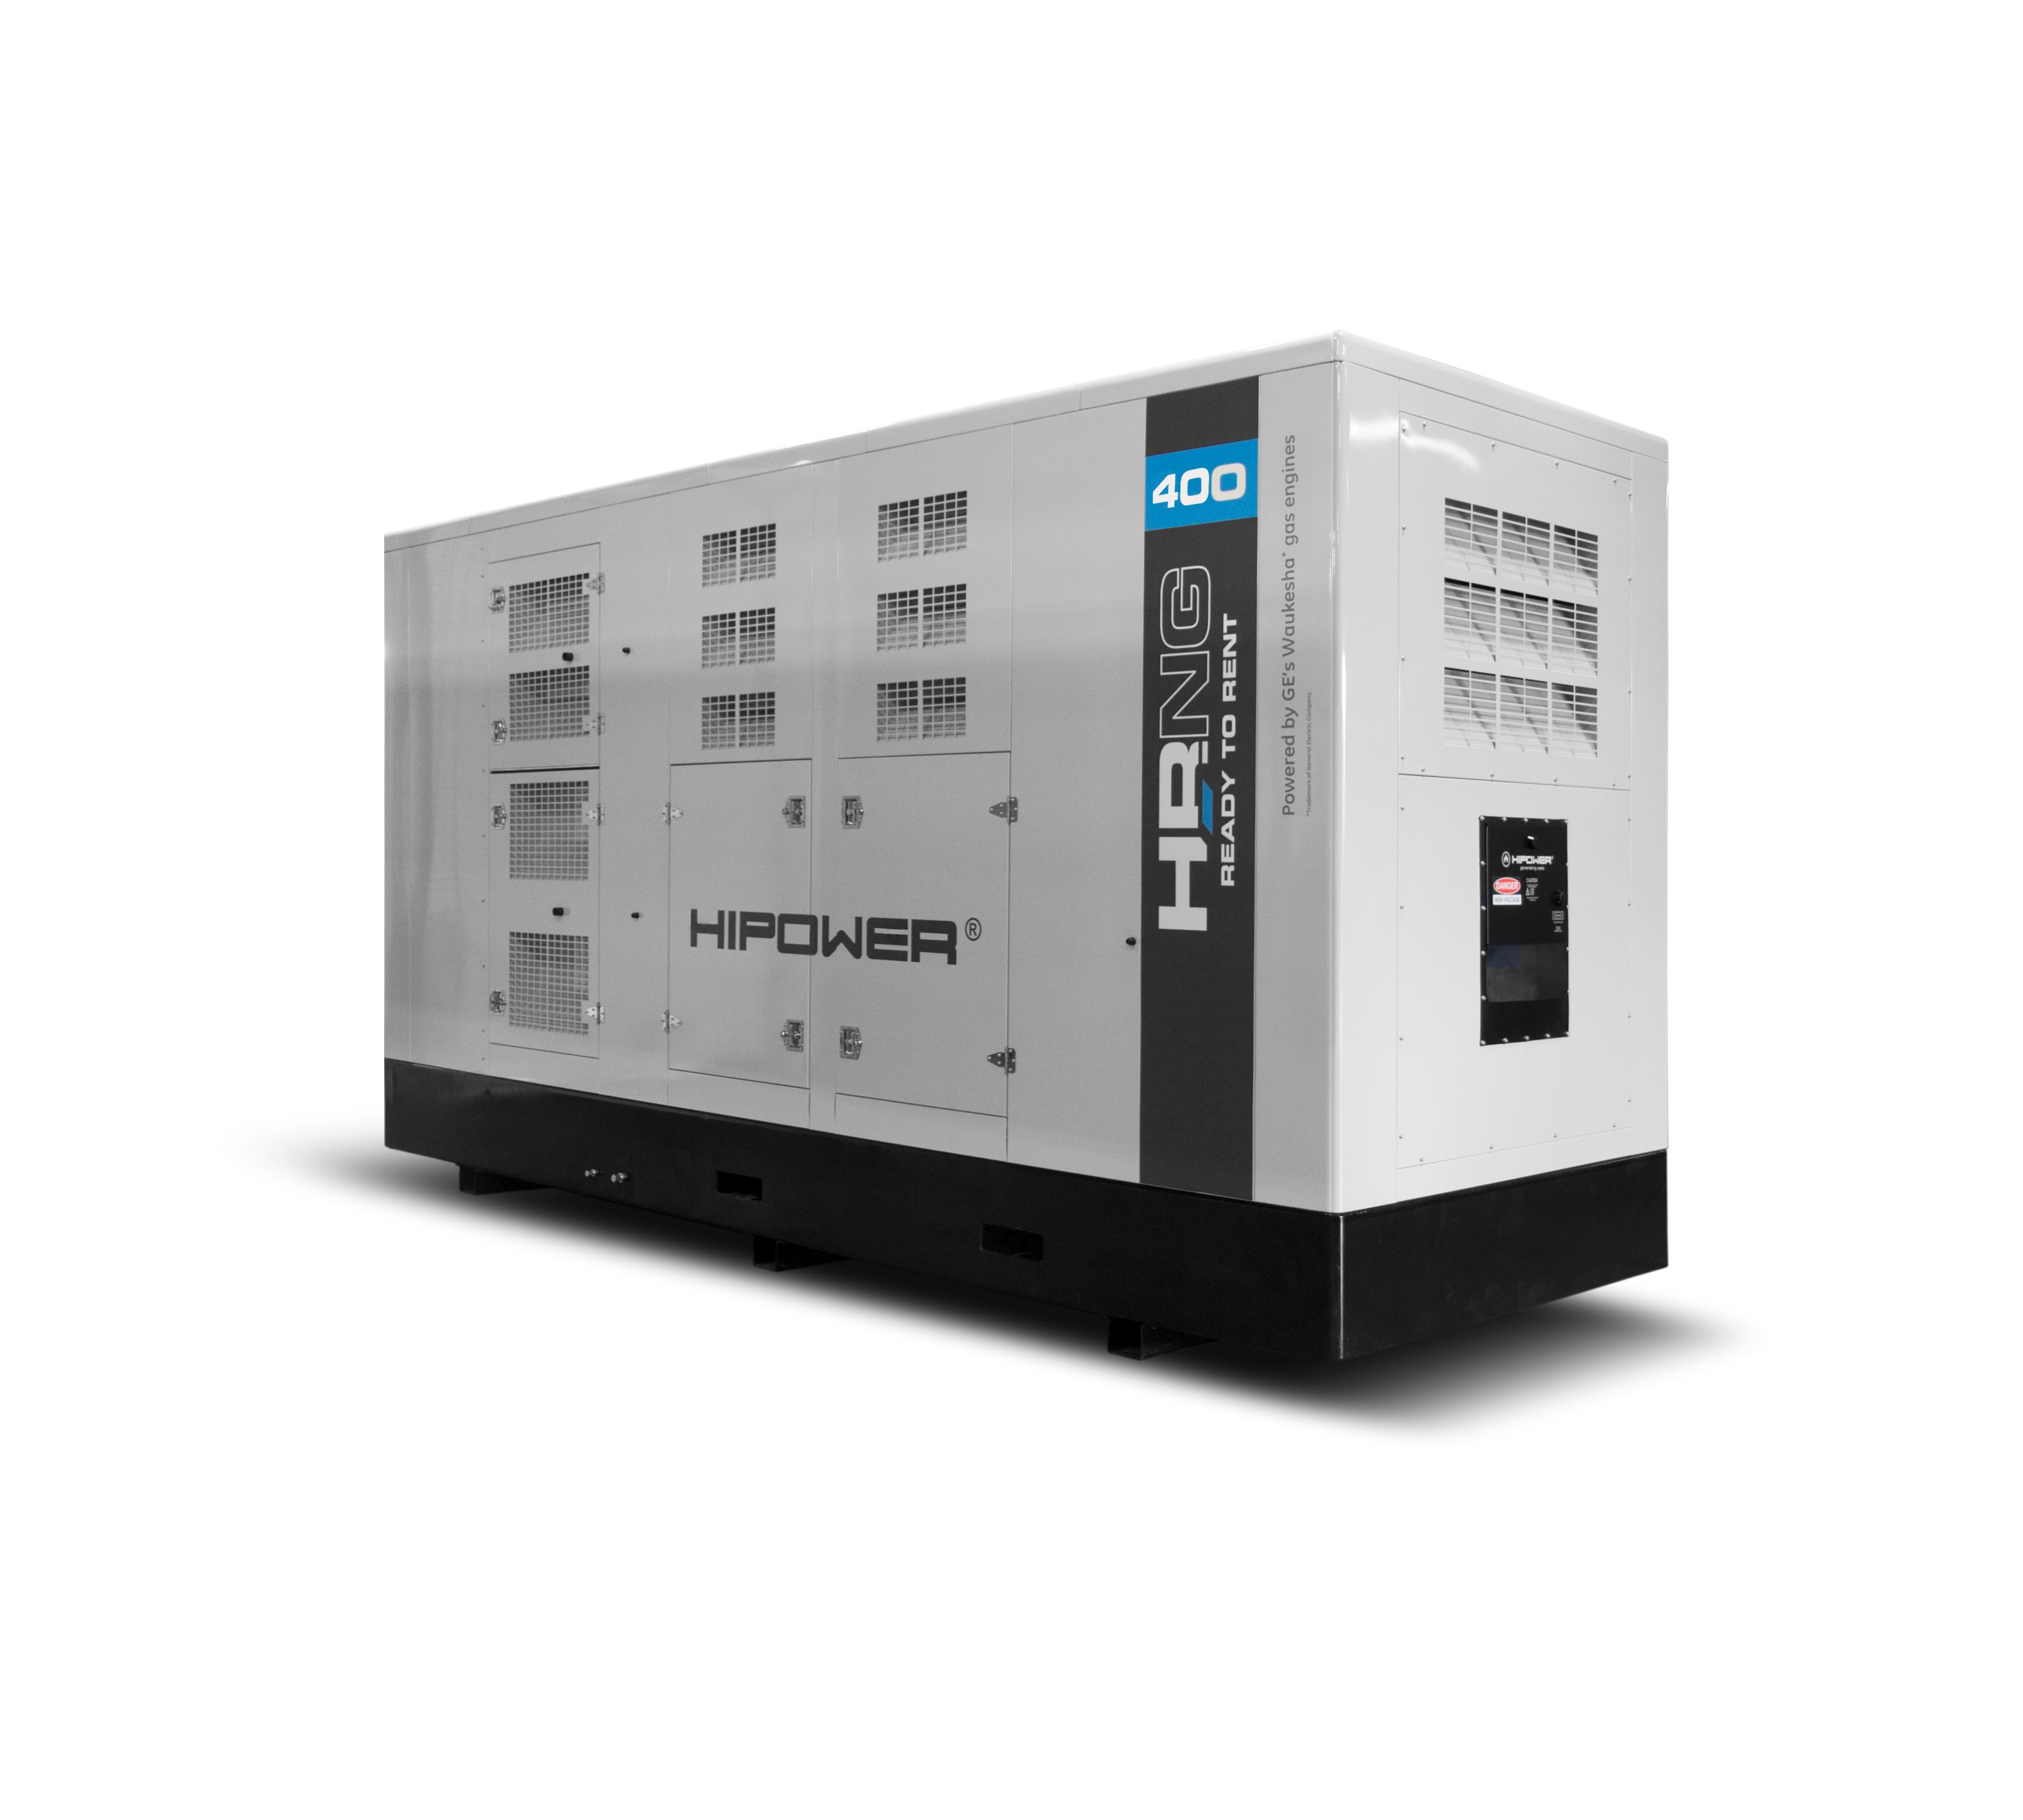 HIPOWER SYSTEMS Be es First Generator Manufacturer to Use